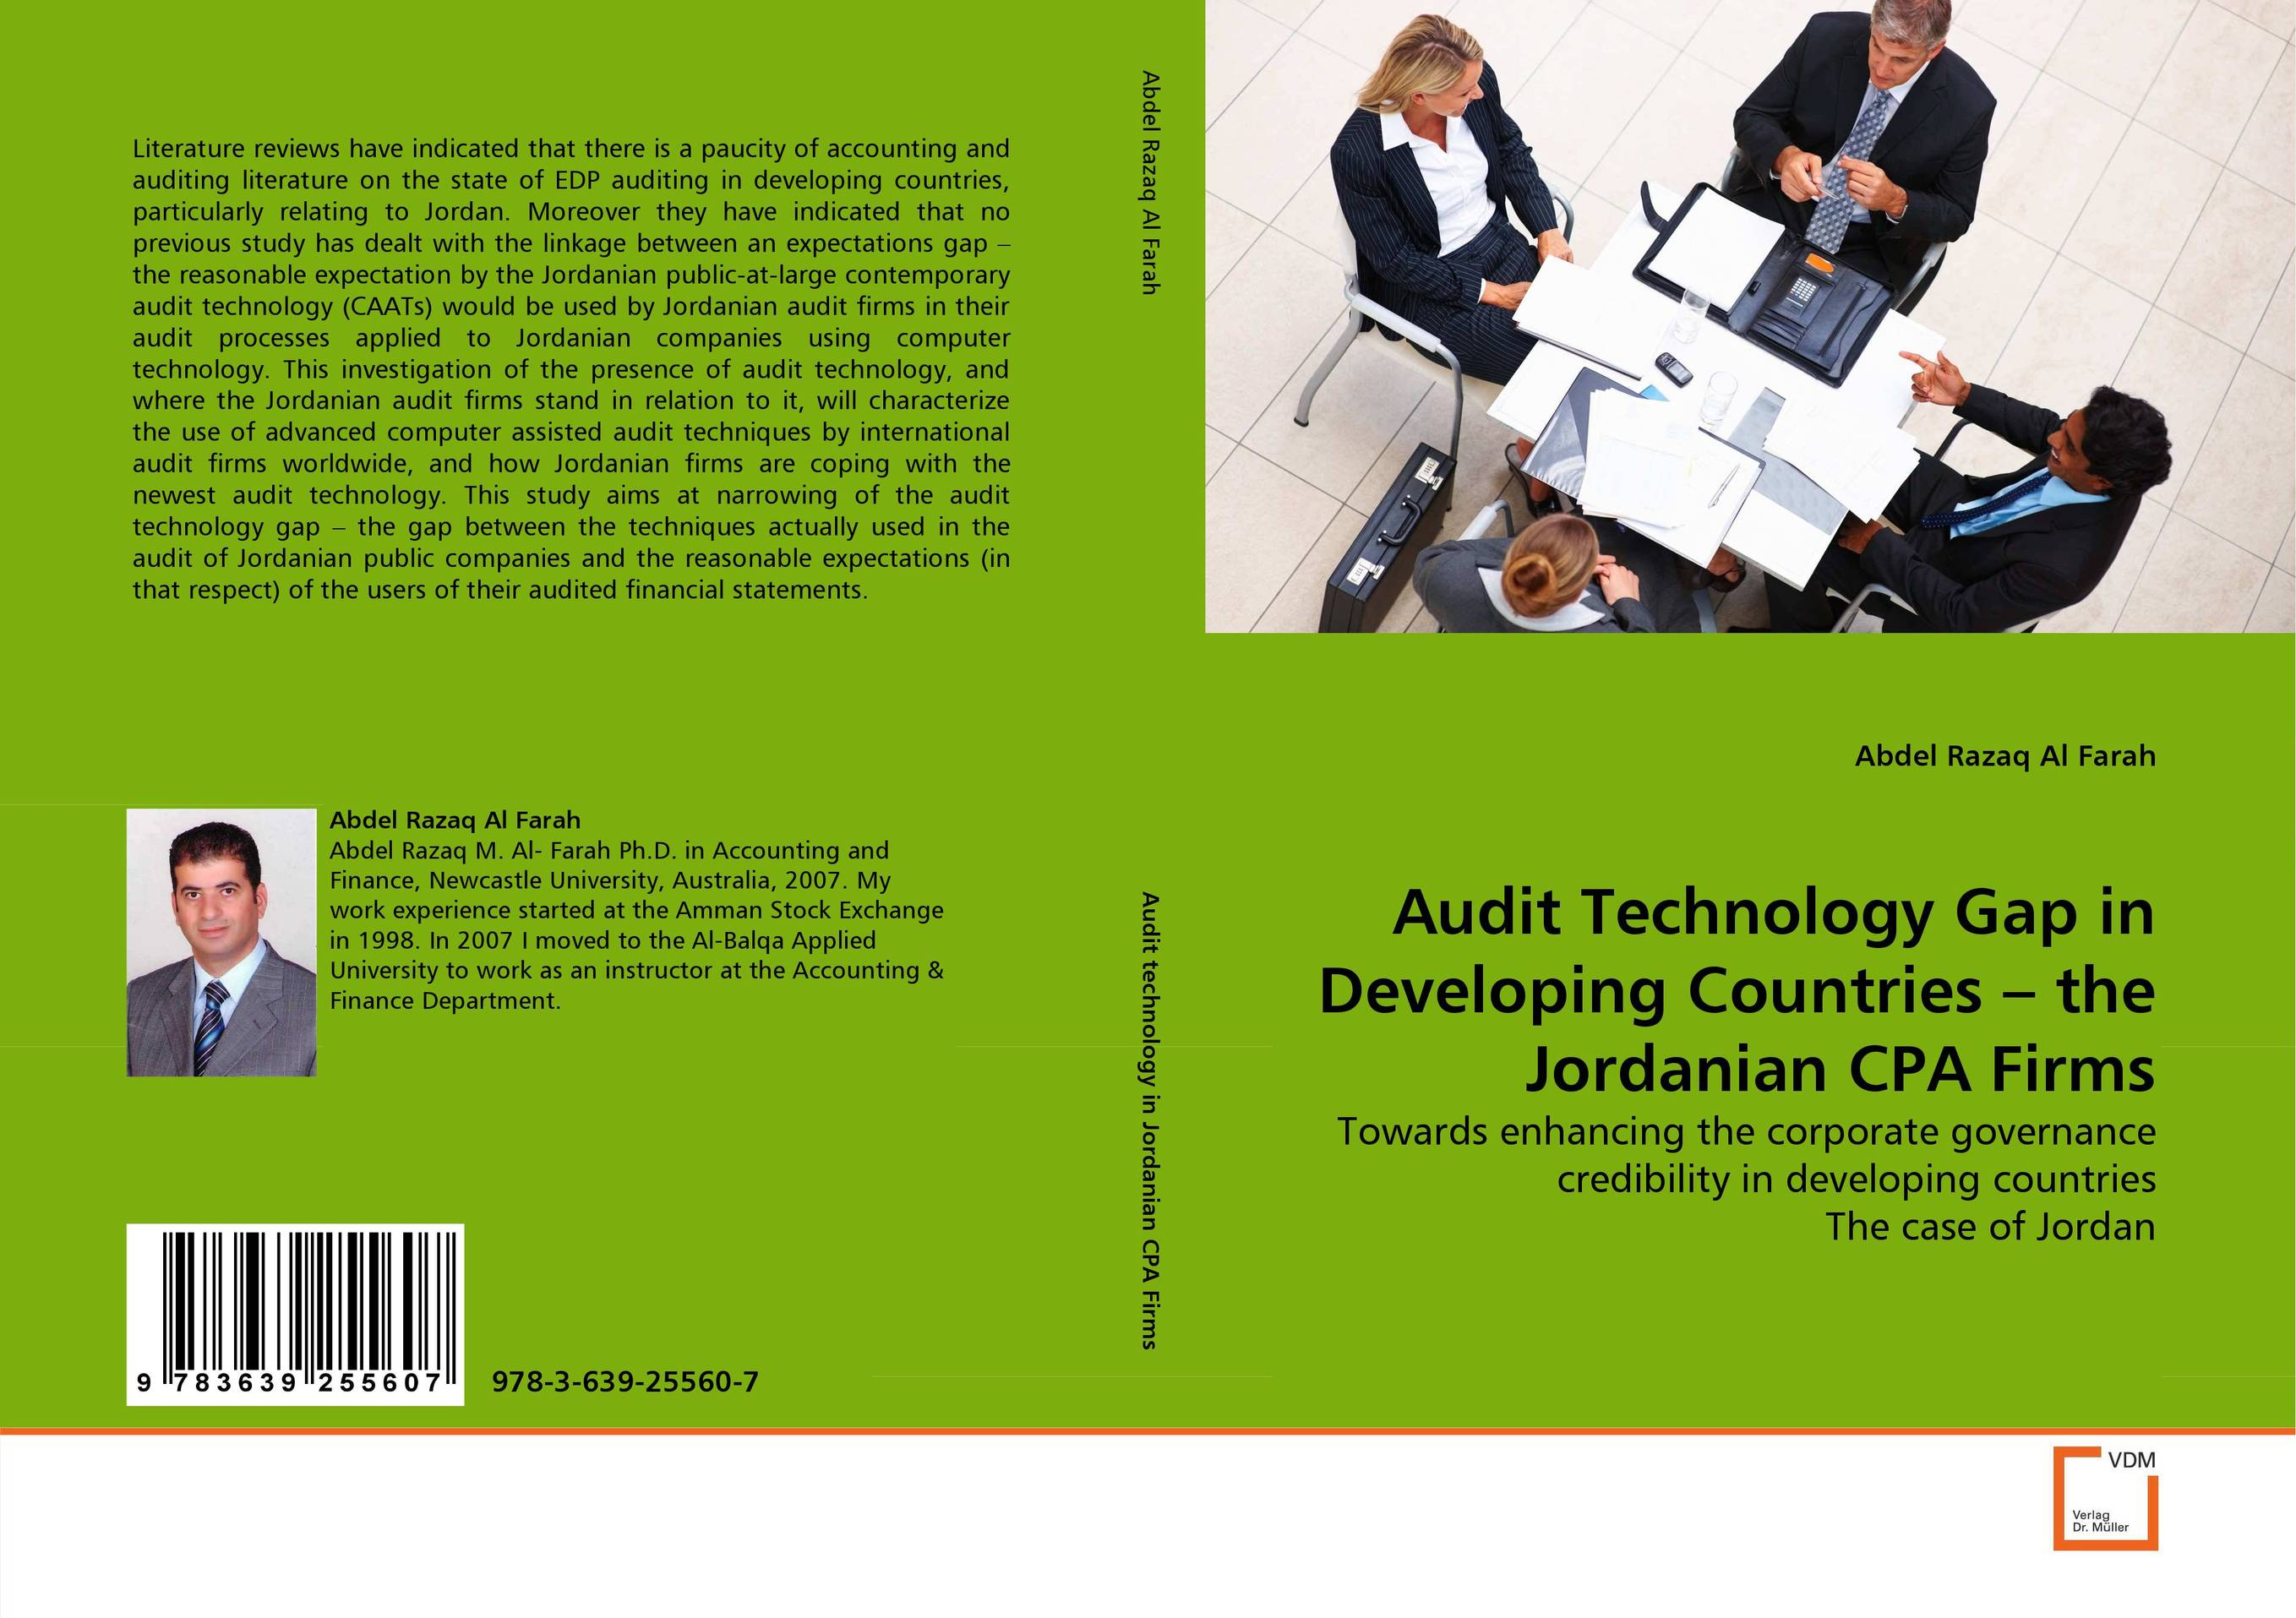 Audit Technology Gap in Developing Countries – the Jordanian CPA Firms комплект боди 3 шт gap gap ga020eksyb47